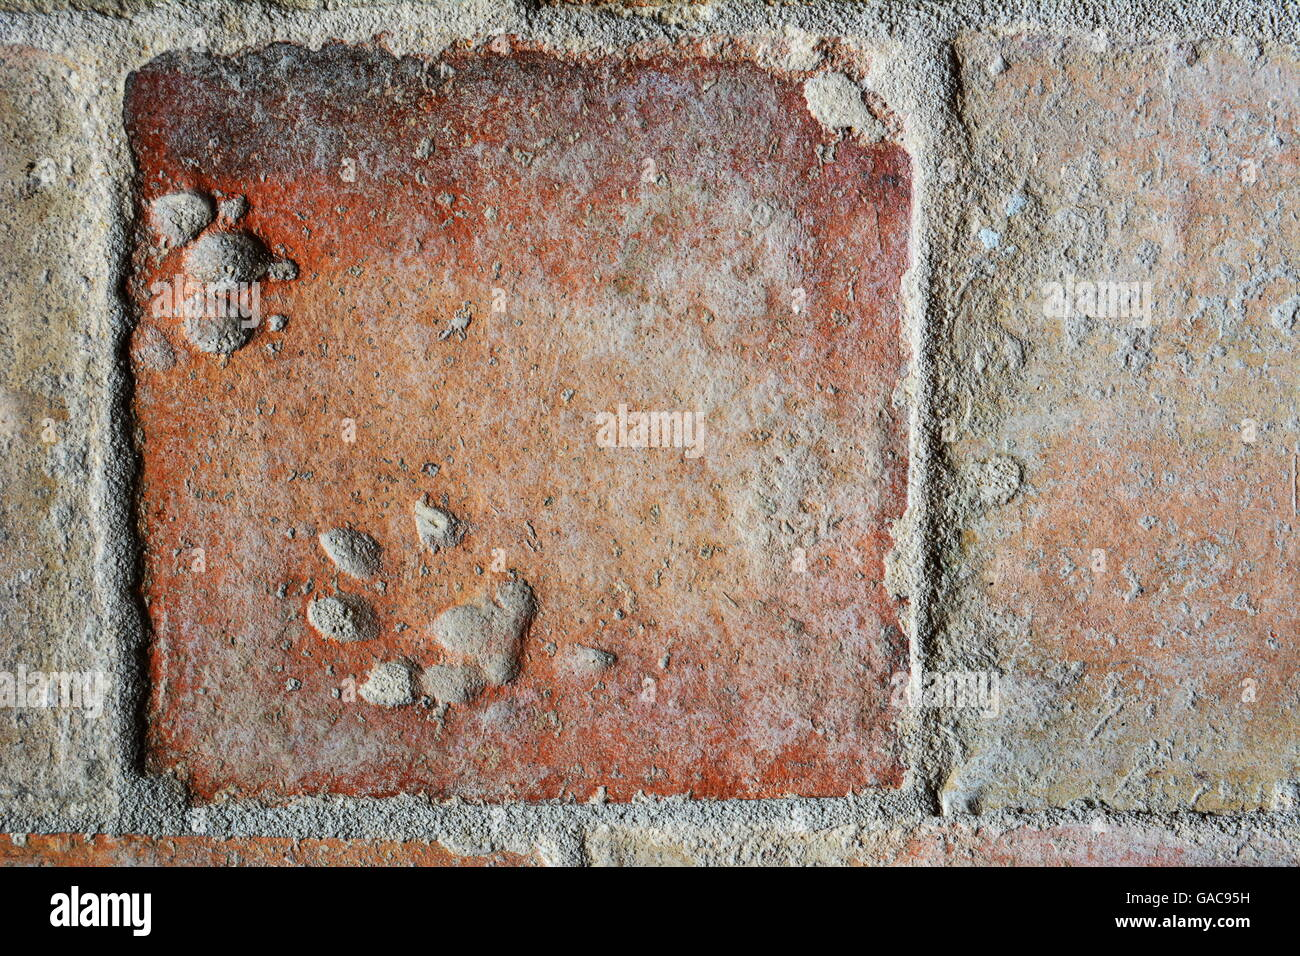 old terracotta floor tile with imprints of dog's paws Stock